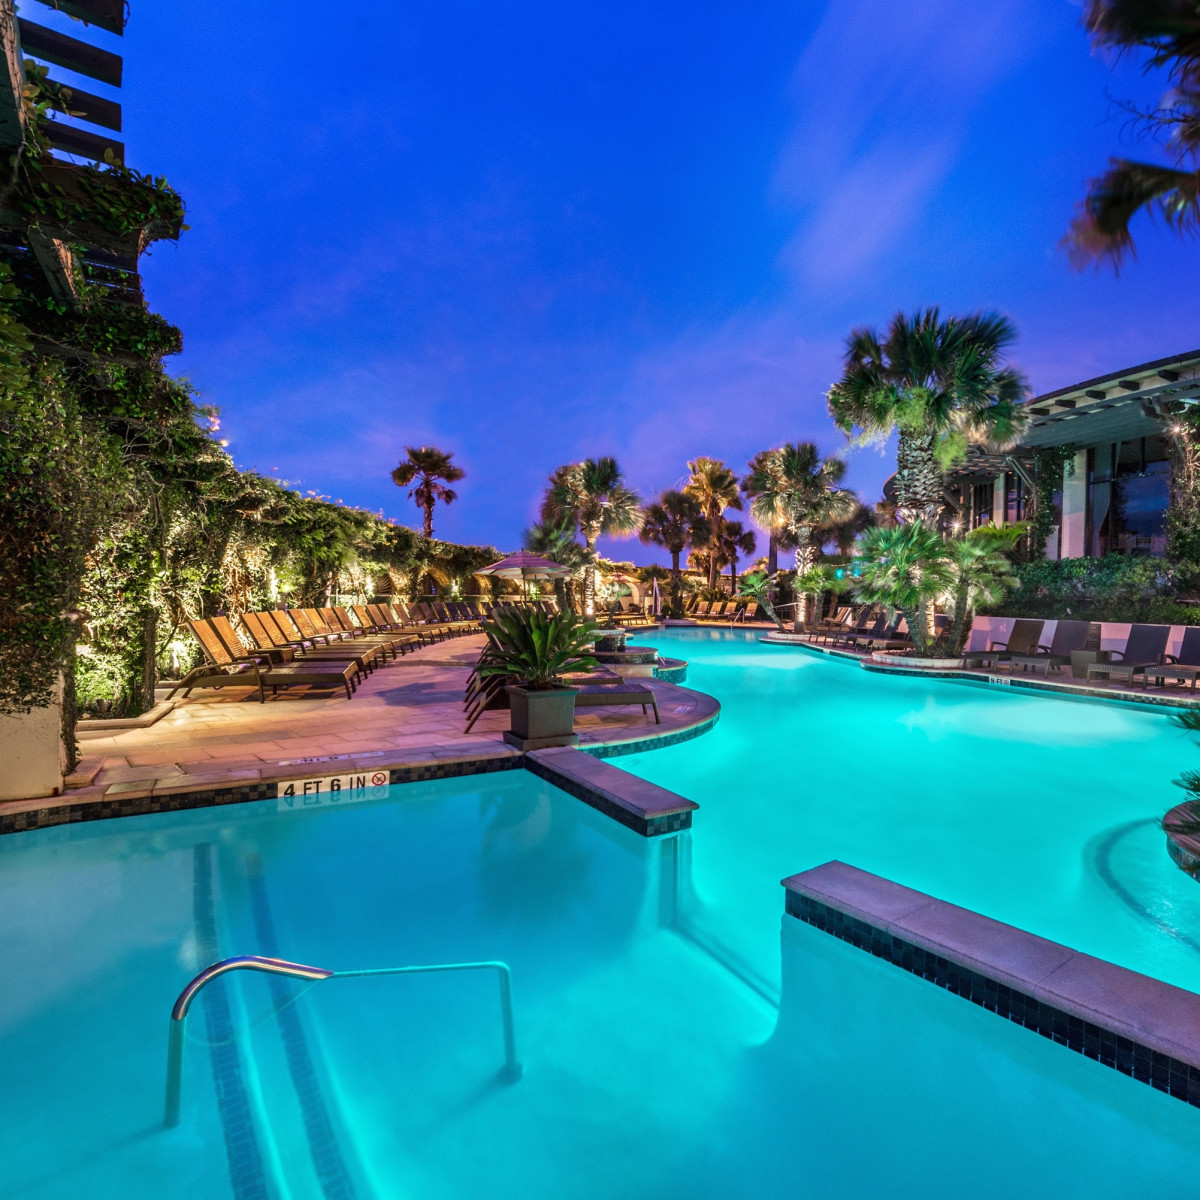 Hotel Galvez pool and swim-up bar